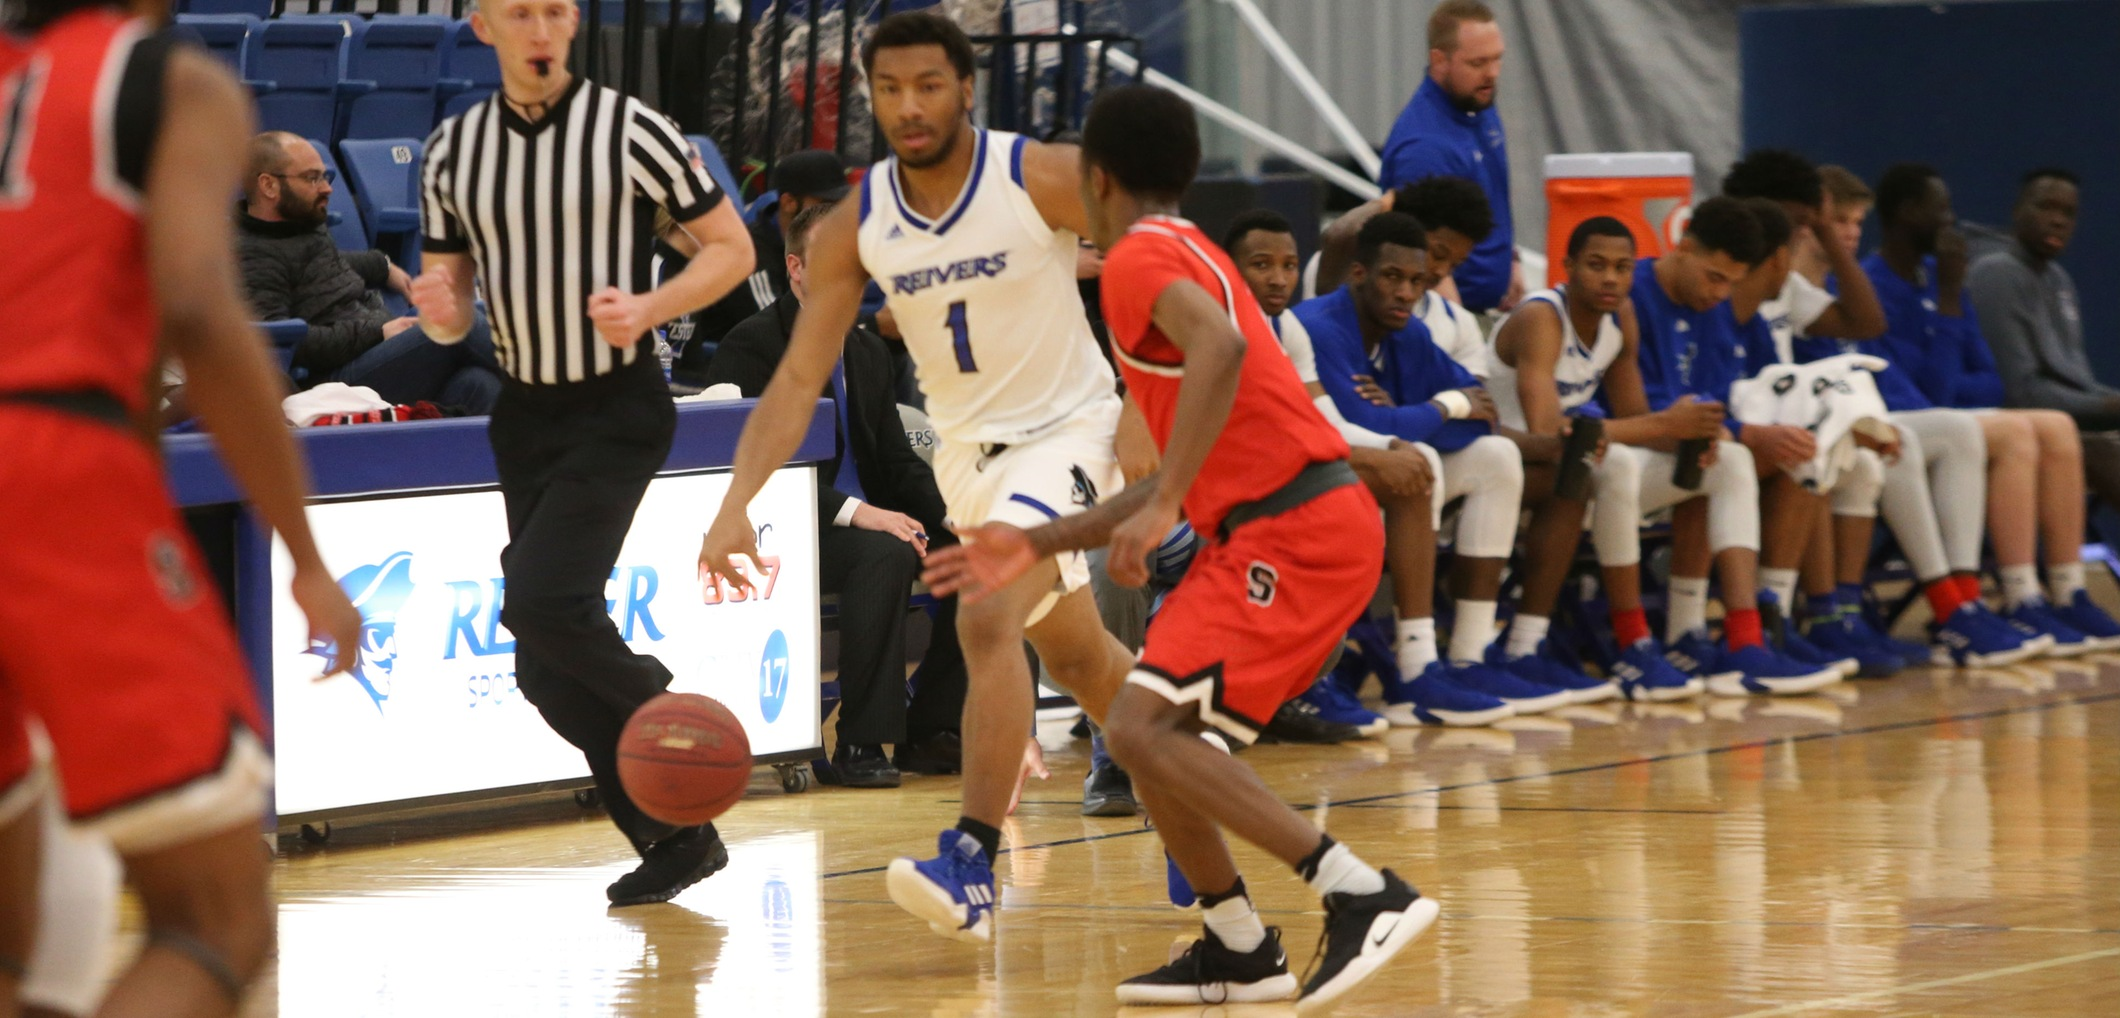 Willard Anderson and his Iowa Western teammates lost to the visiting Blackhawks of Southeastern Wednesday evening (1/30/19) at Reiver Arena.